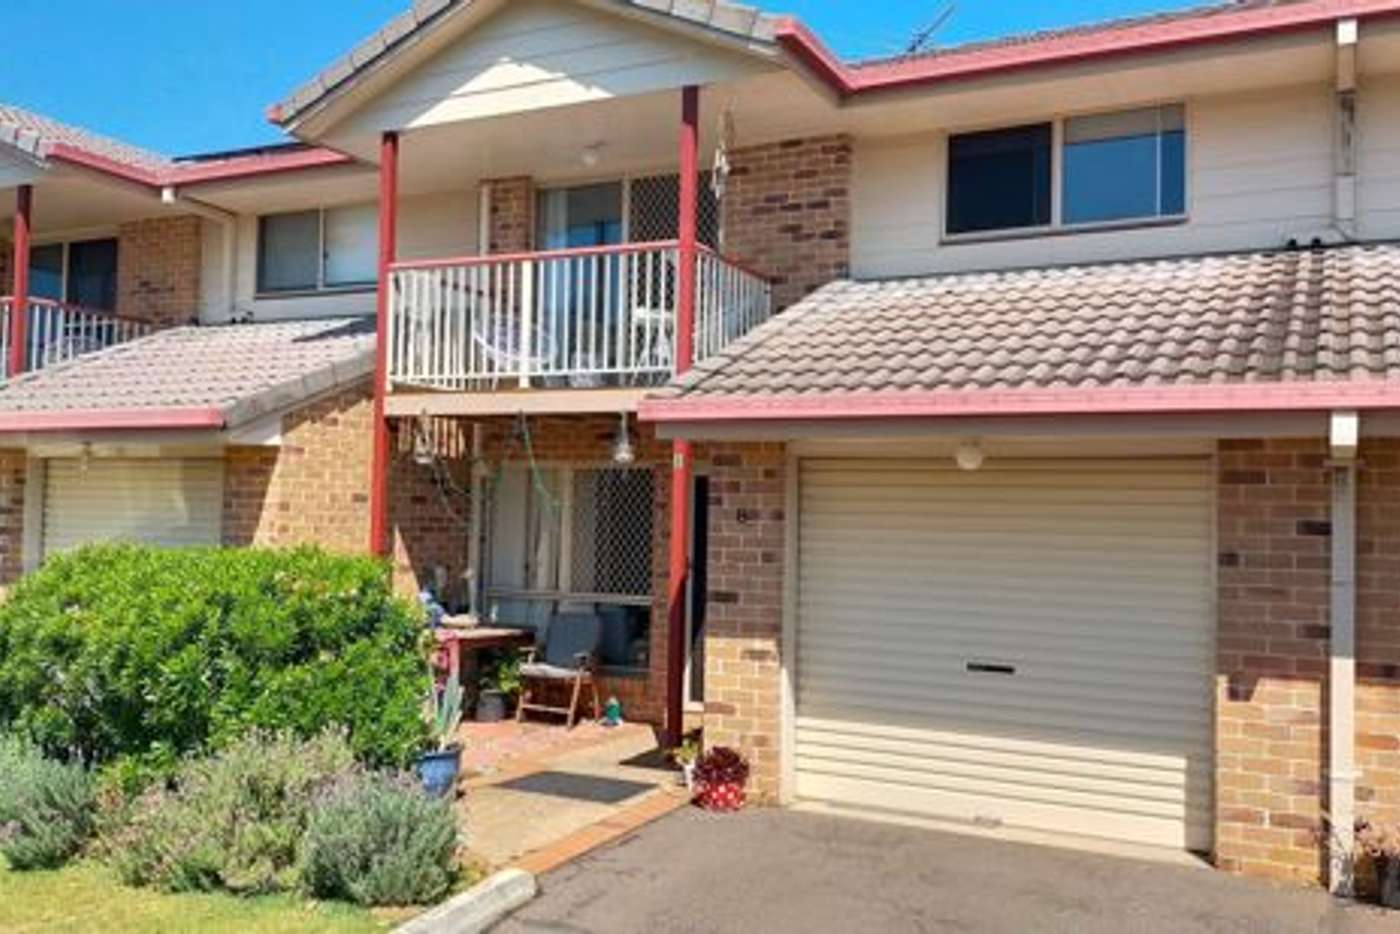 Main view of Homely townhouse listing, 8 /121 GOLDEN AVE, Calamvale QLD 4116